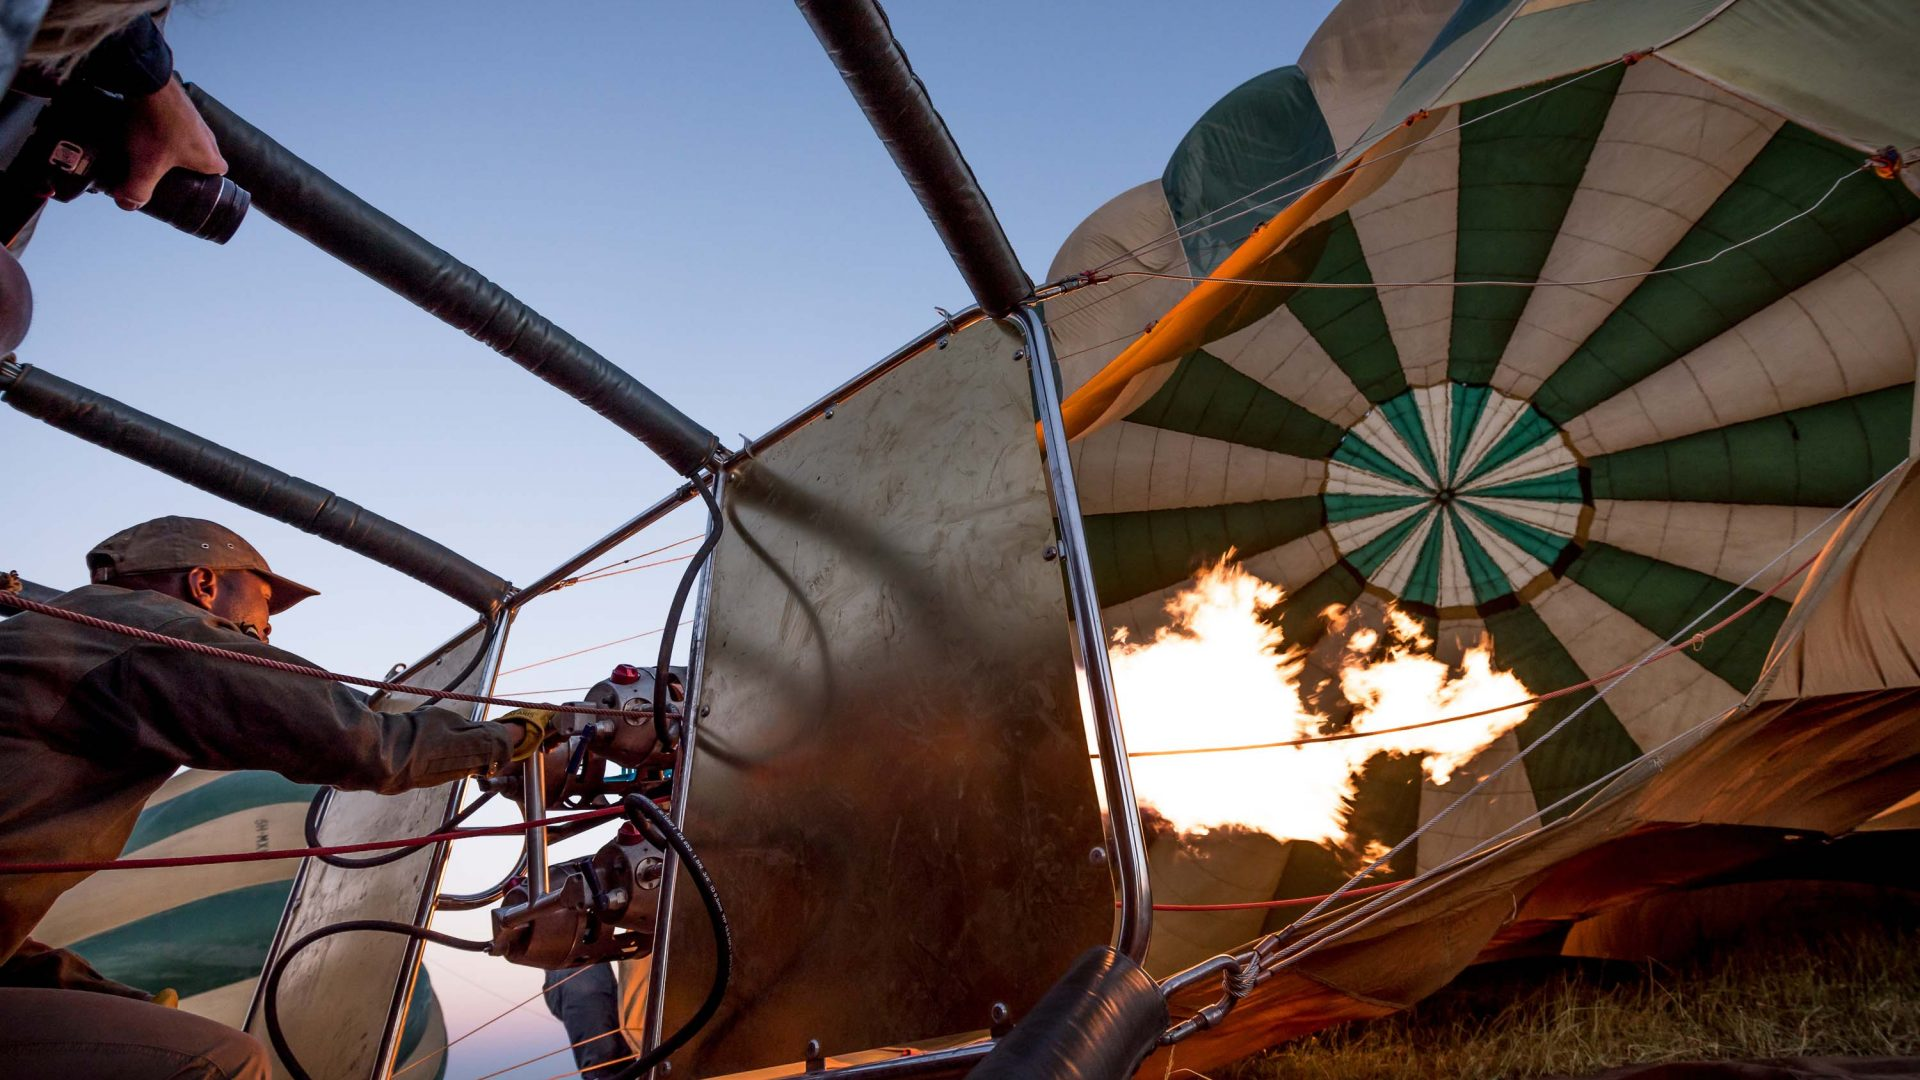 A hot air balloon is filled with gas, ready to rise above the Serengeti, Tanzania.